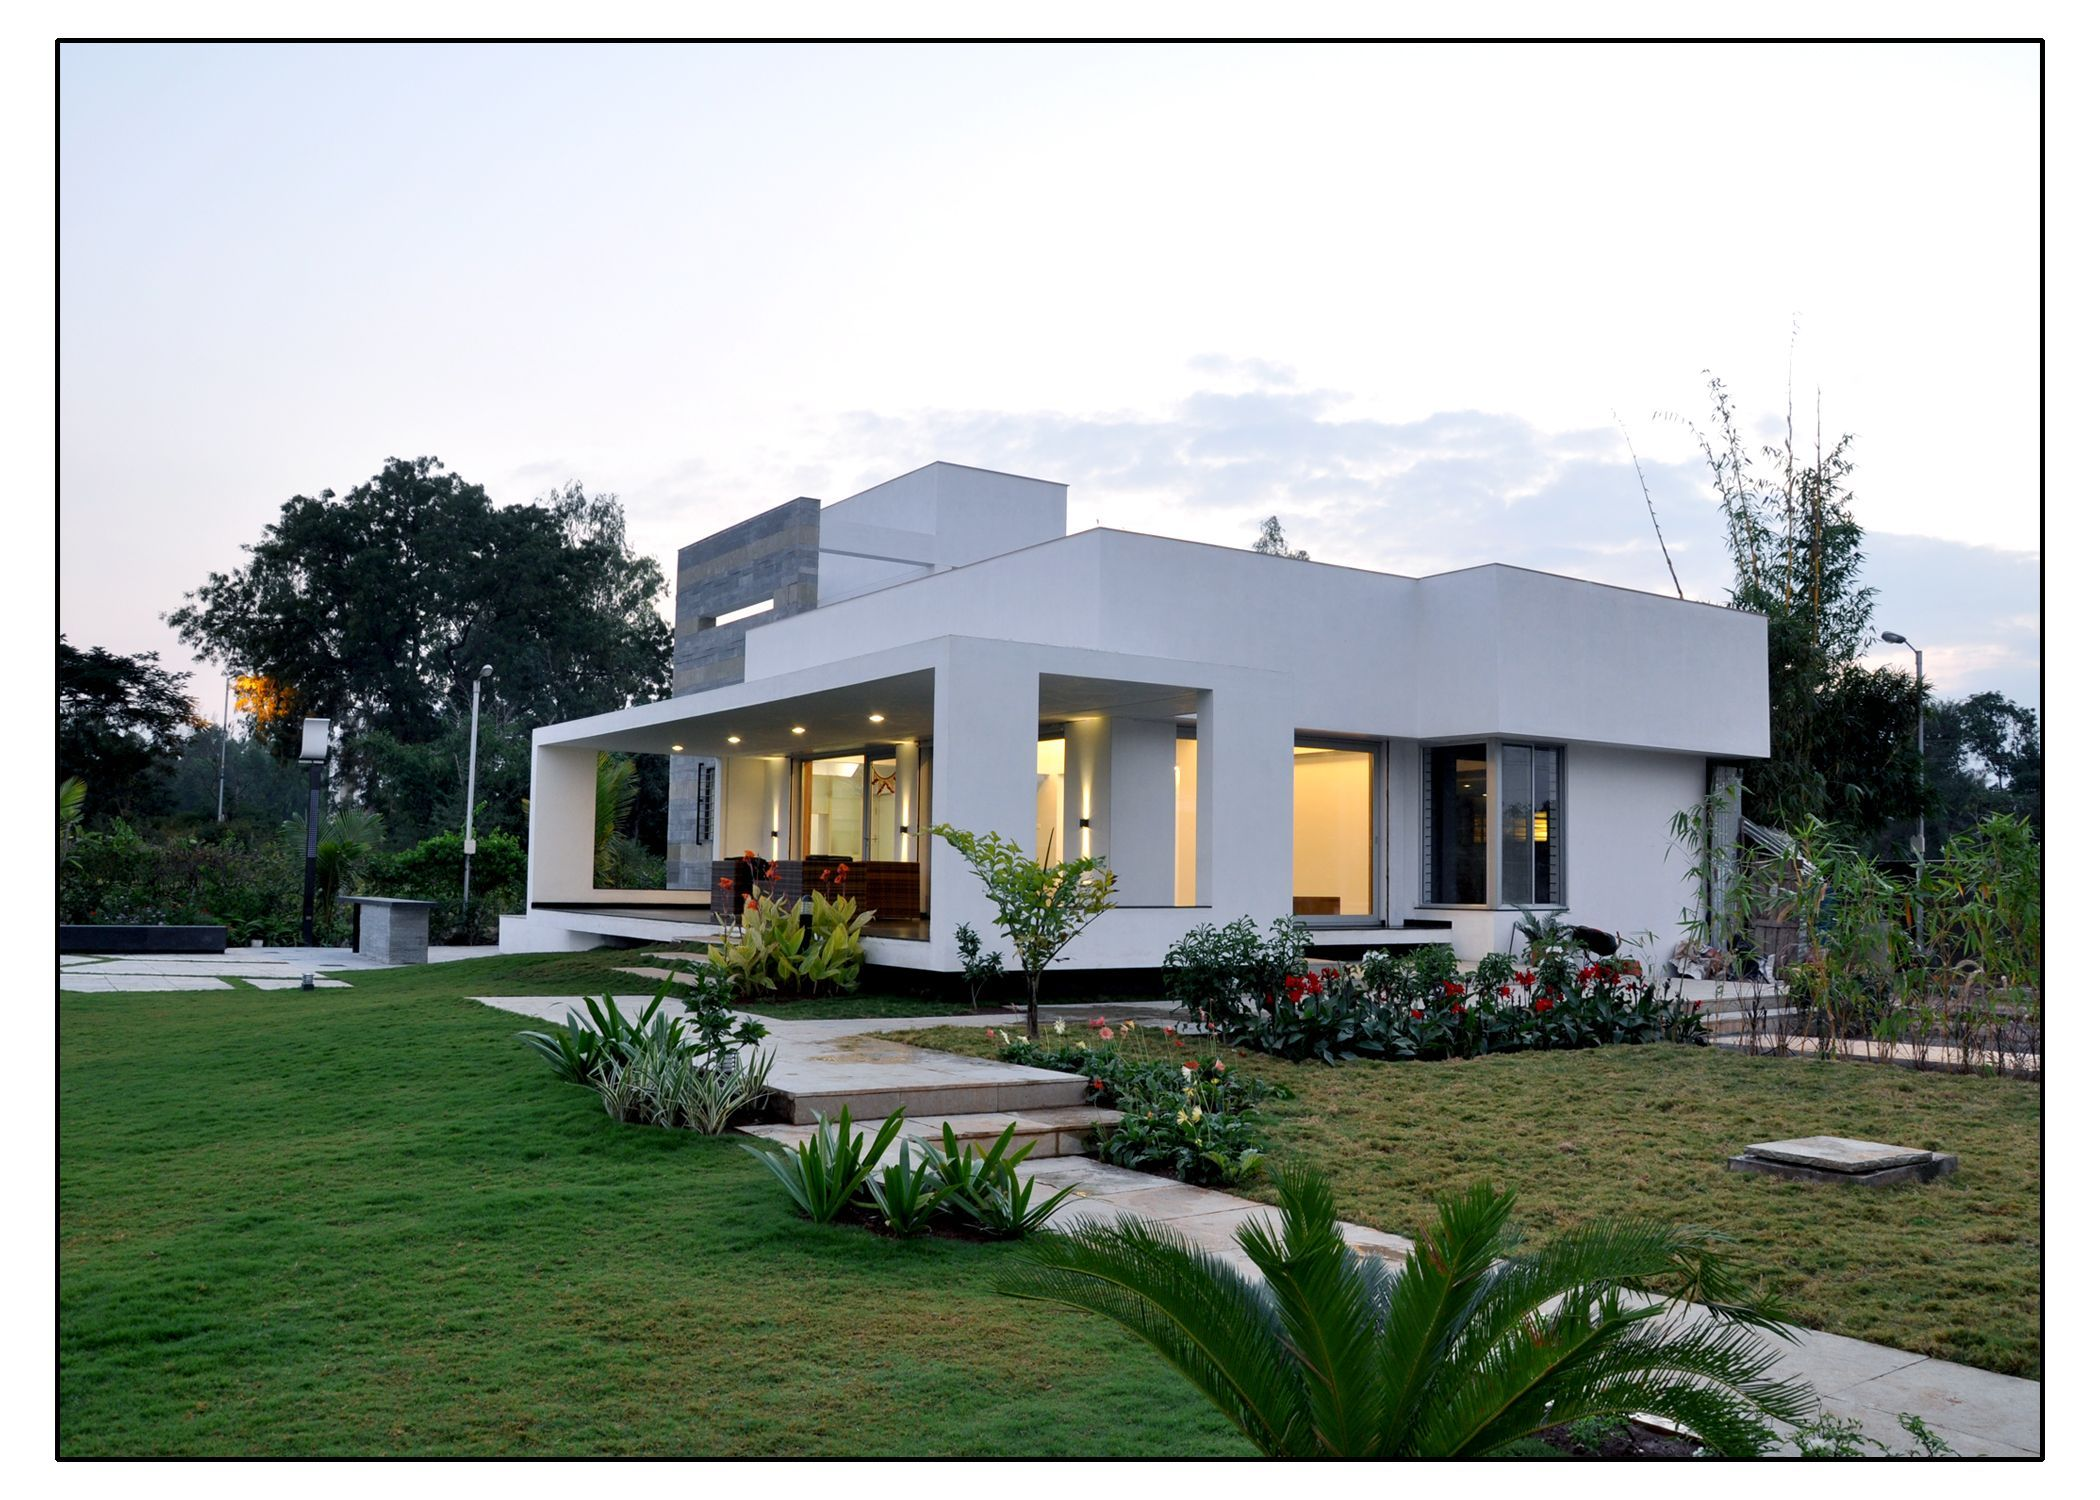 Architecture Design For Indian Homes farm house green house designs india - google search | farm house